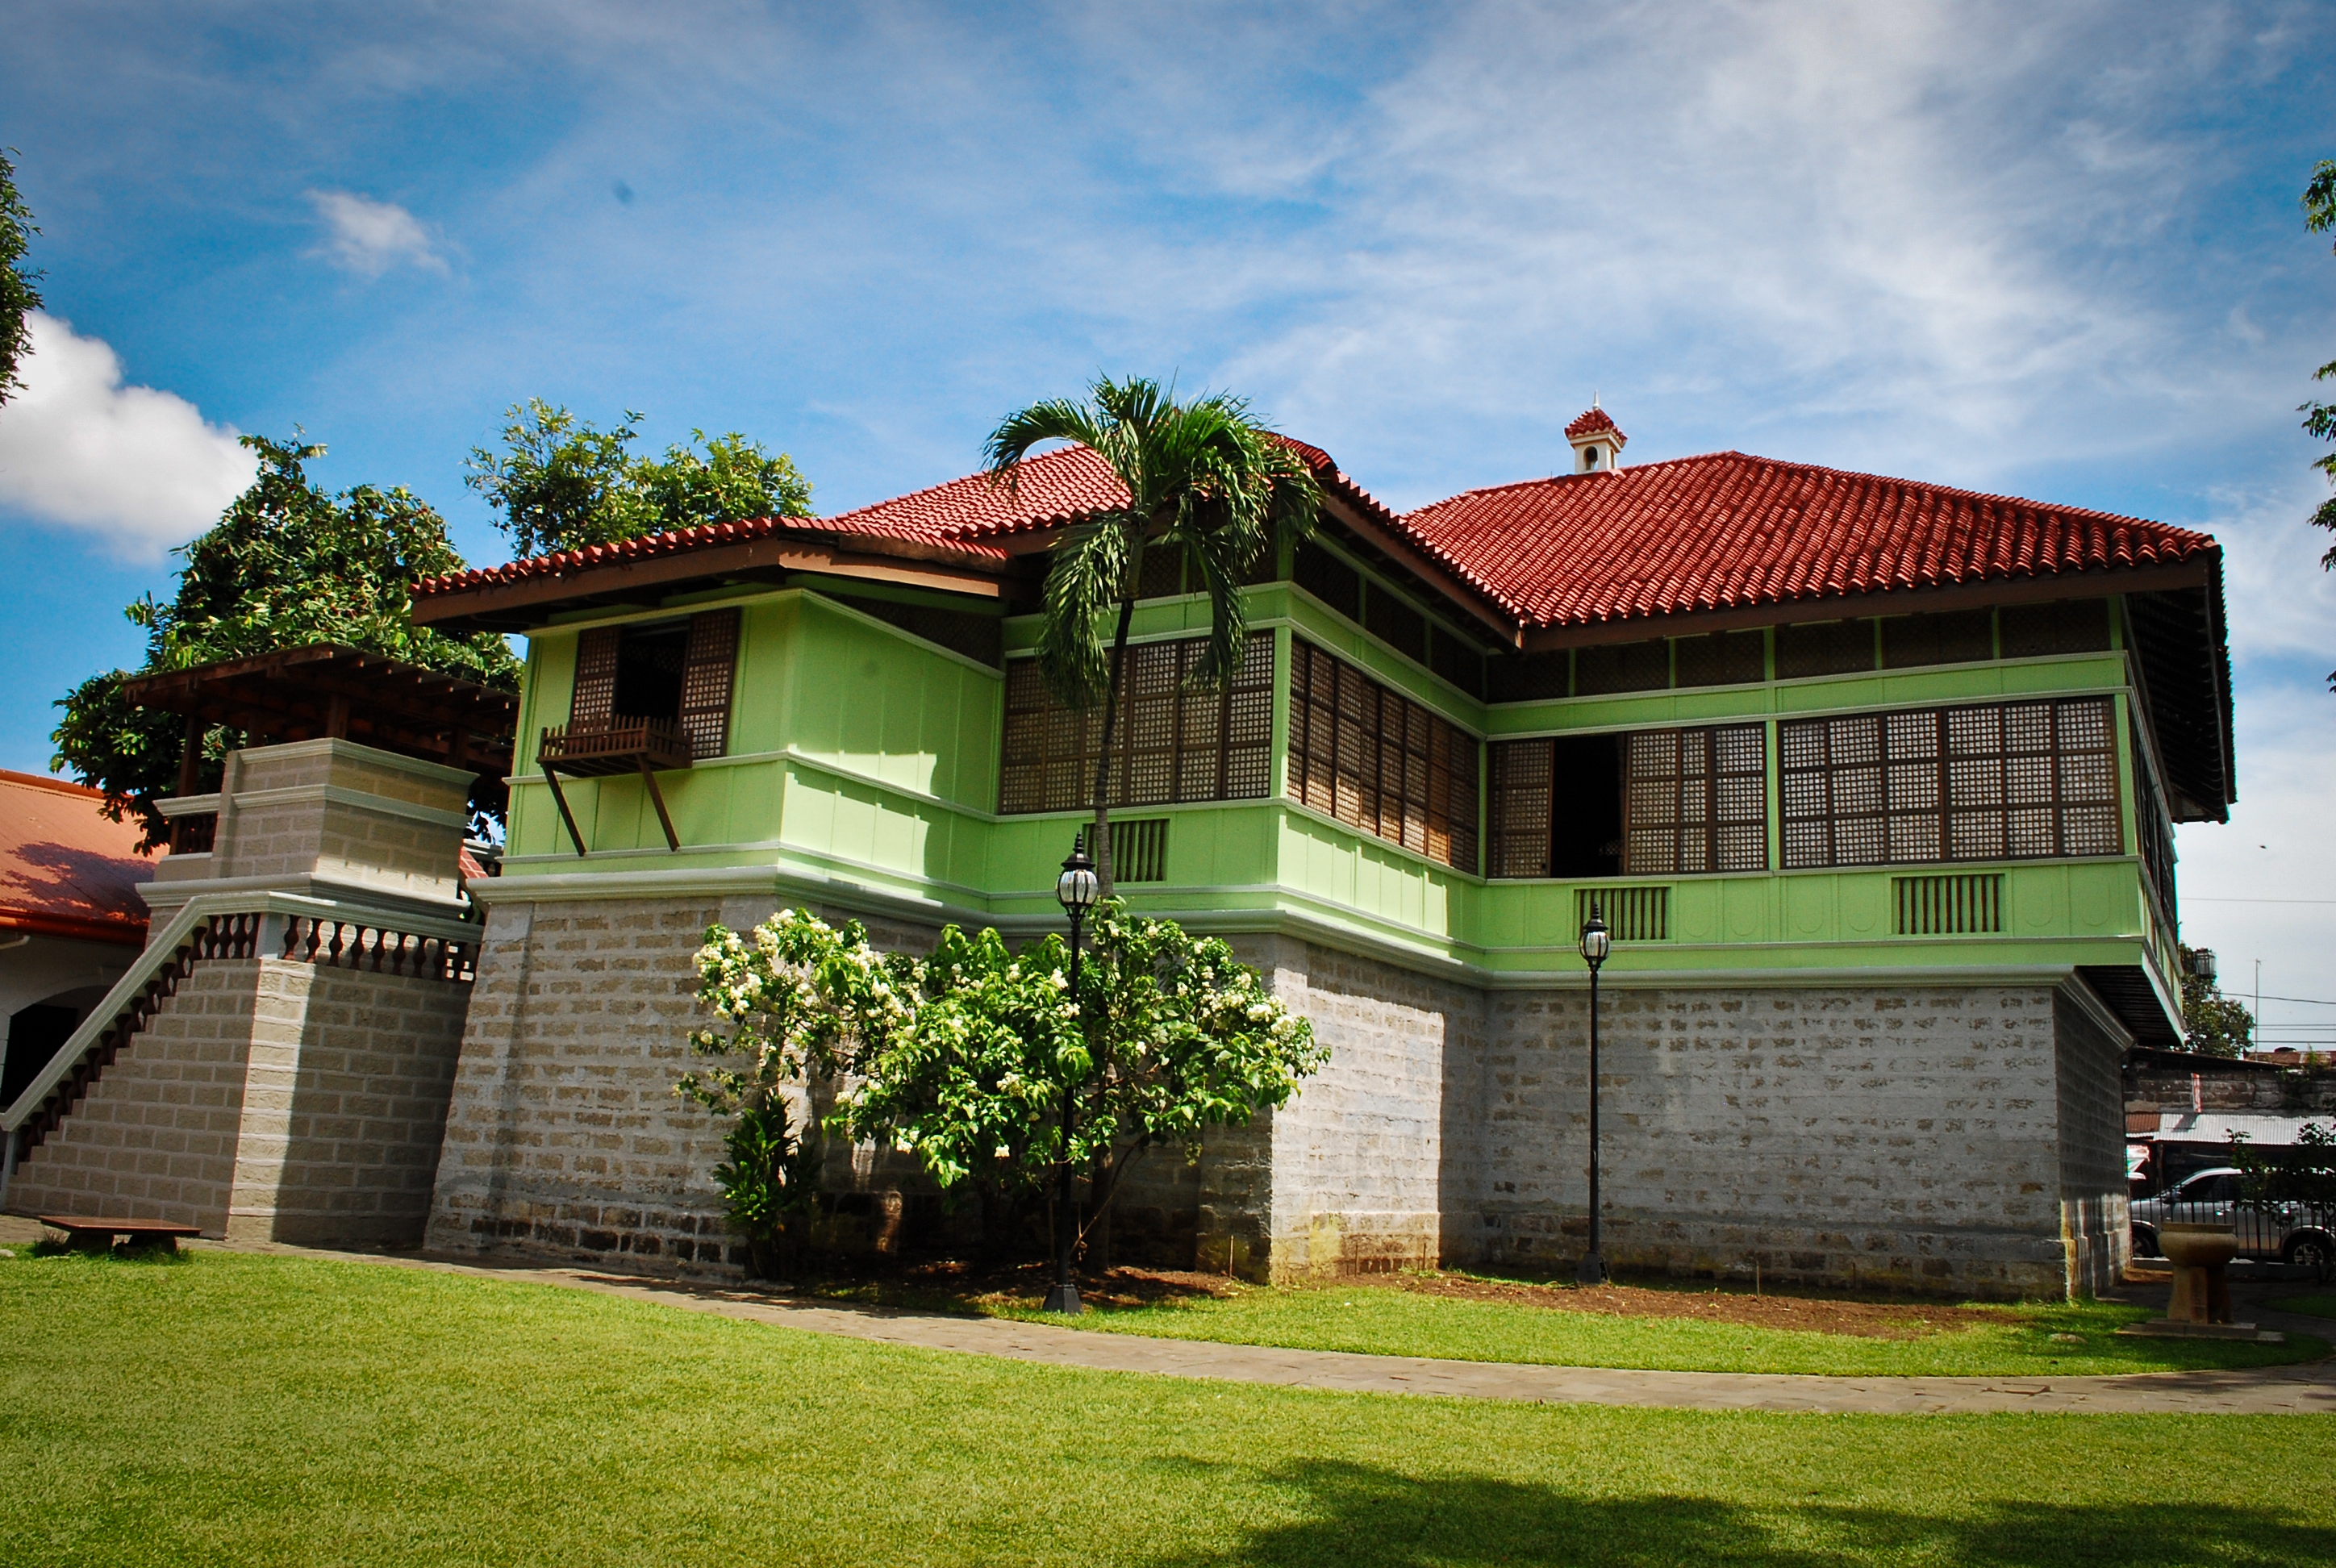 further Tropical Filipino Design For A Family Home further Photoblog Calamba Rizal Shrine as well Carlo 4 Bedroom 2 Story House Floor Plan further Northwoods. on 2 storey house design philippines